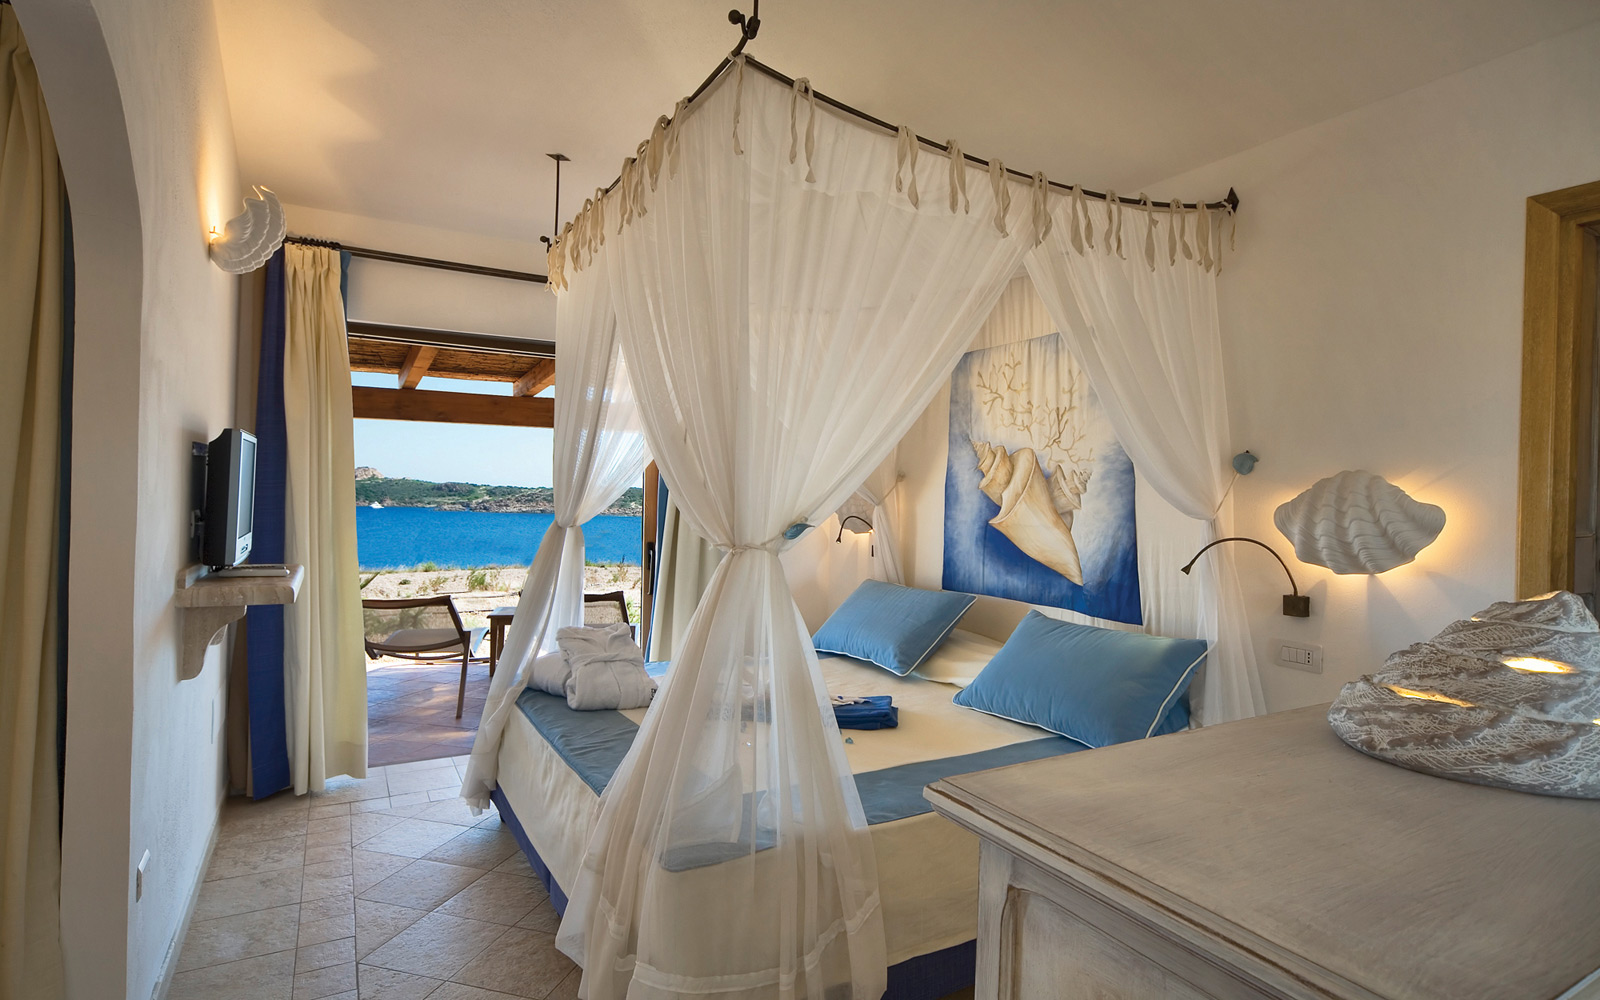 Presidential Suite at at Hotel Relax Torreruja Thalasso & Spa